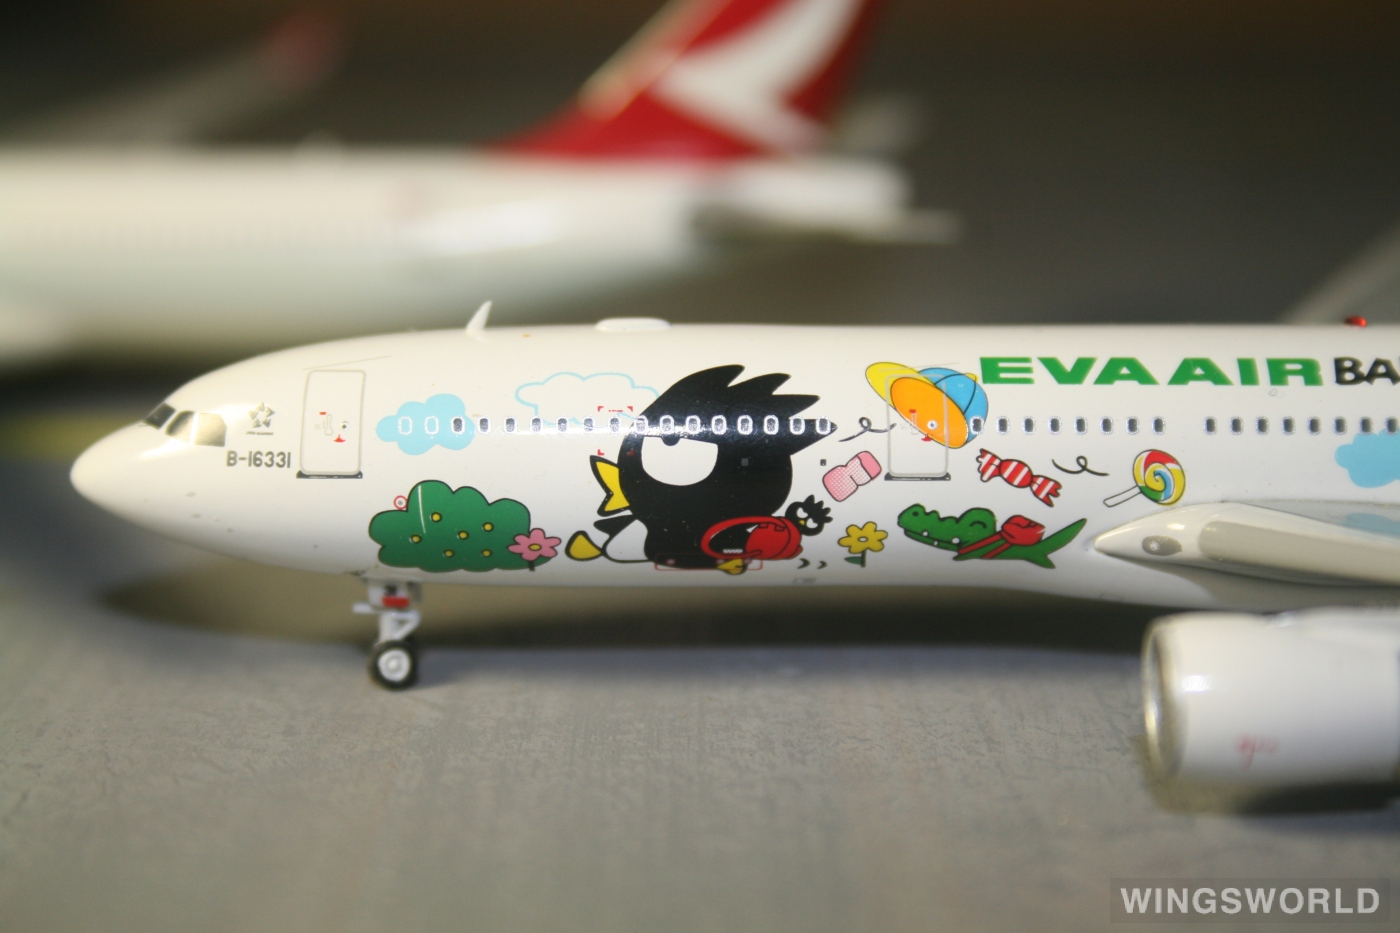 Aviation400 1:400 AV4333002 EVA Air 长荣航空 Airbus A330-300 B-16331